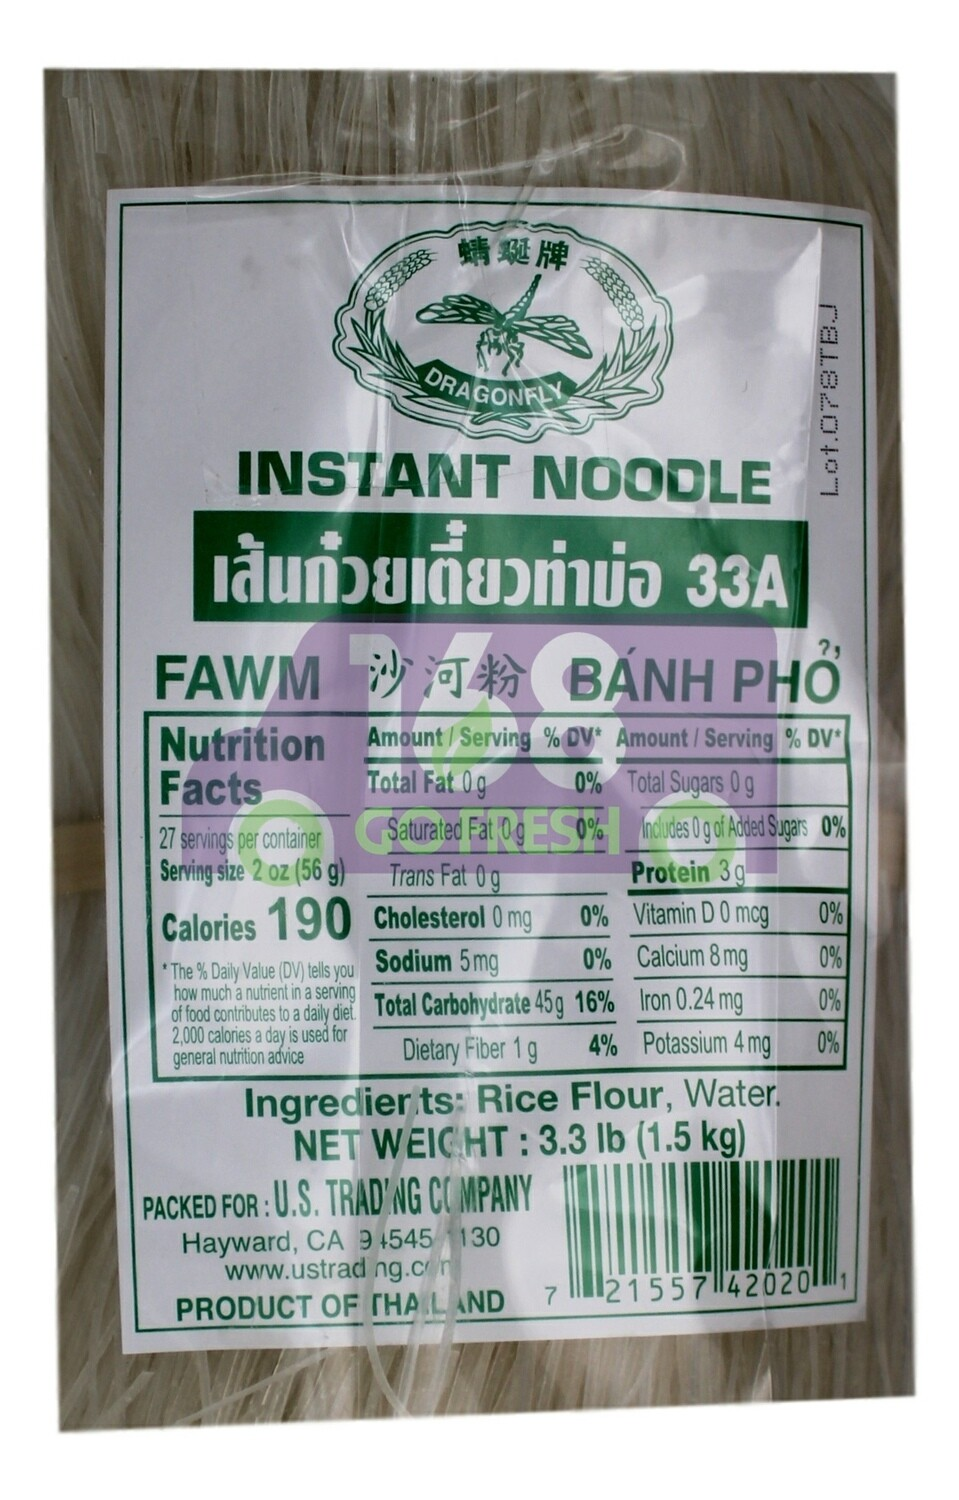 DRAGONFLY INSTANT NOODLE 蜻蜓牌 沙河粉